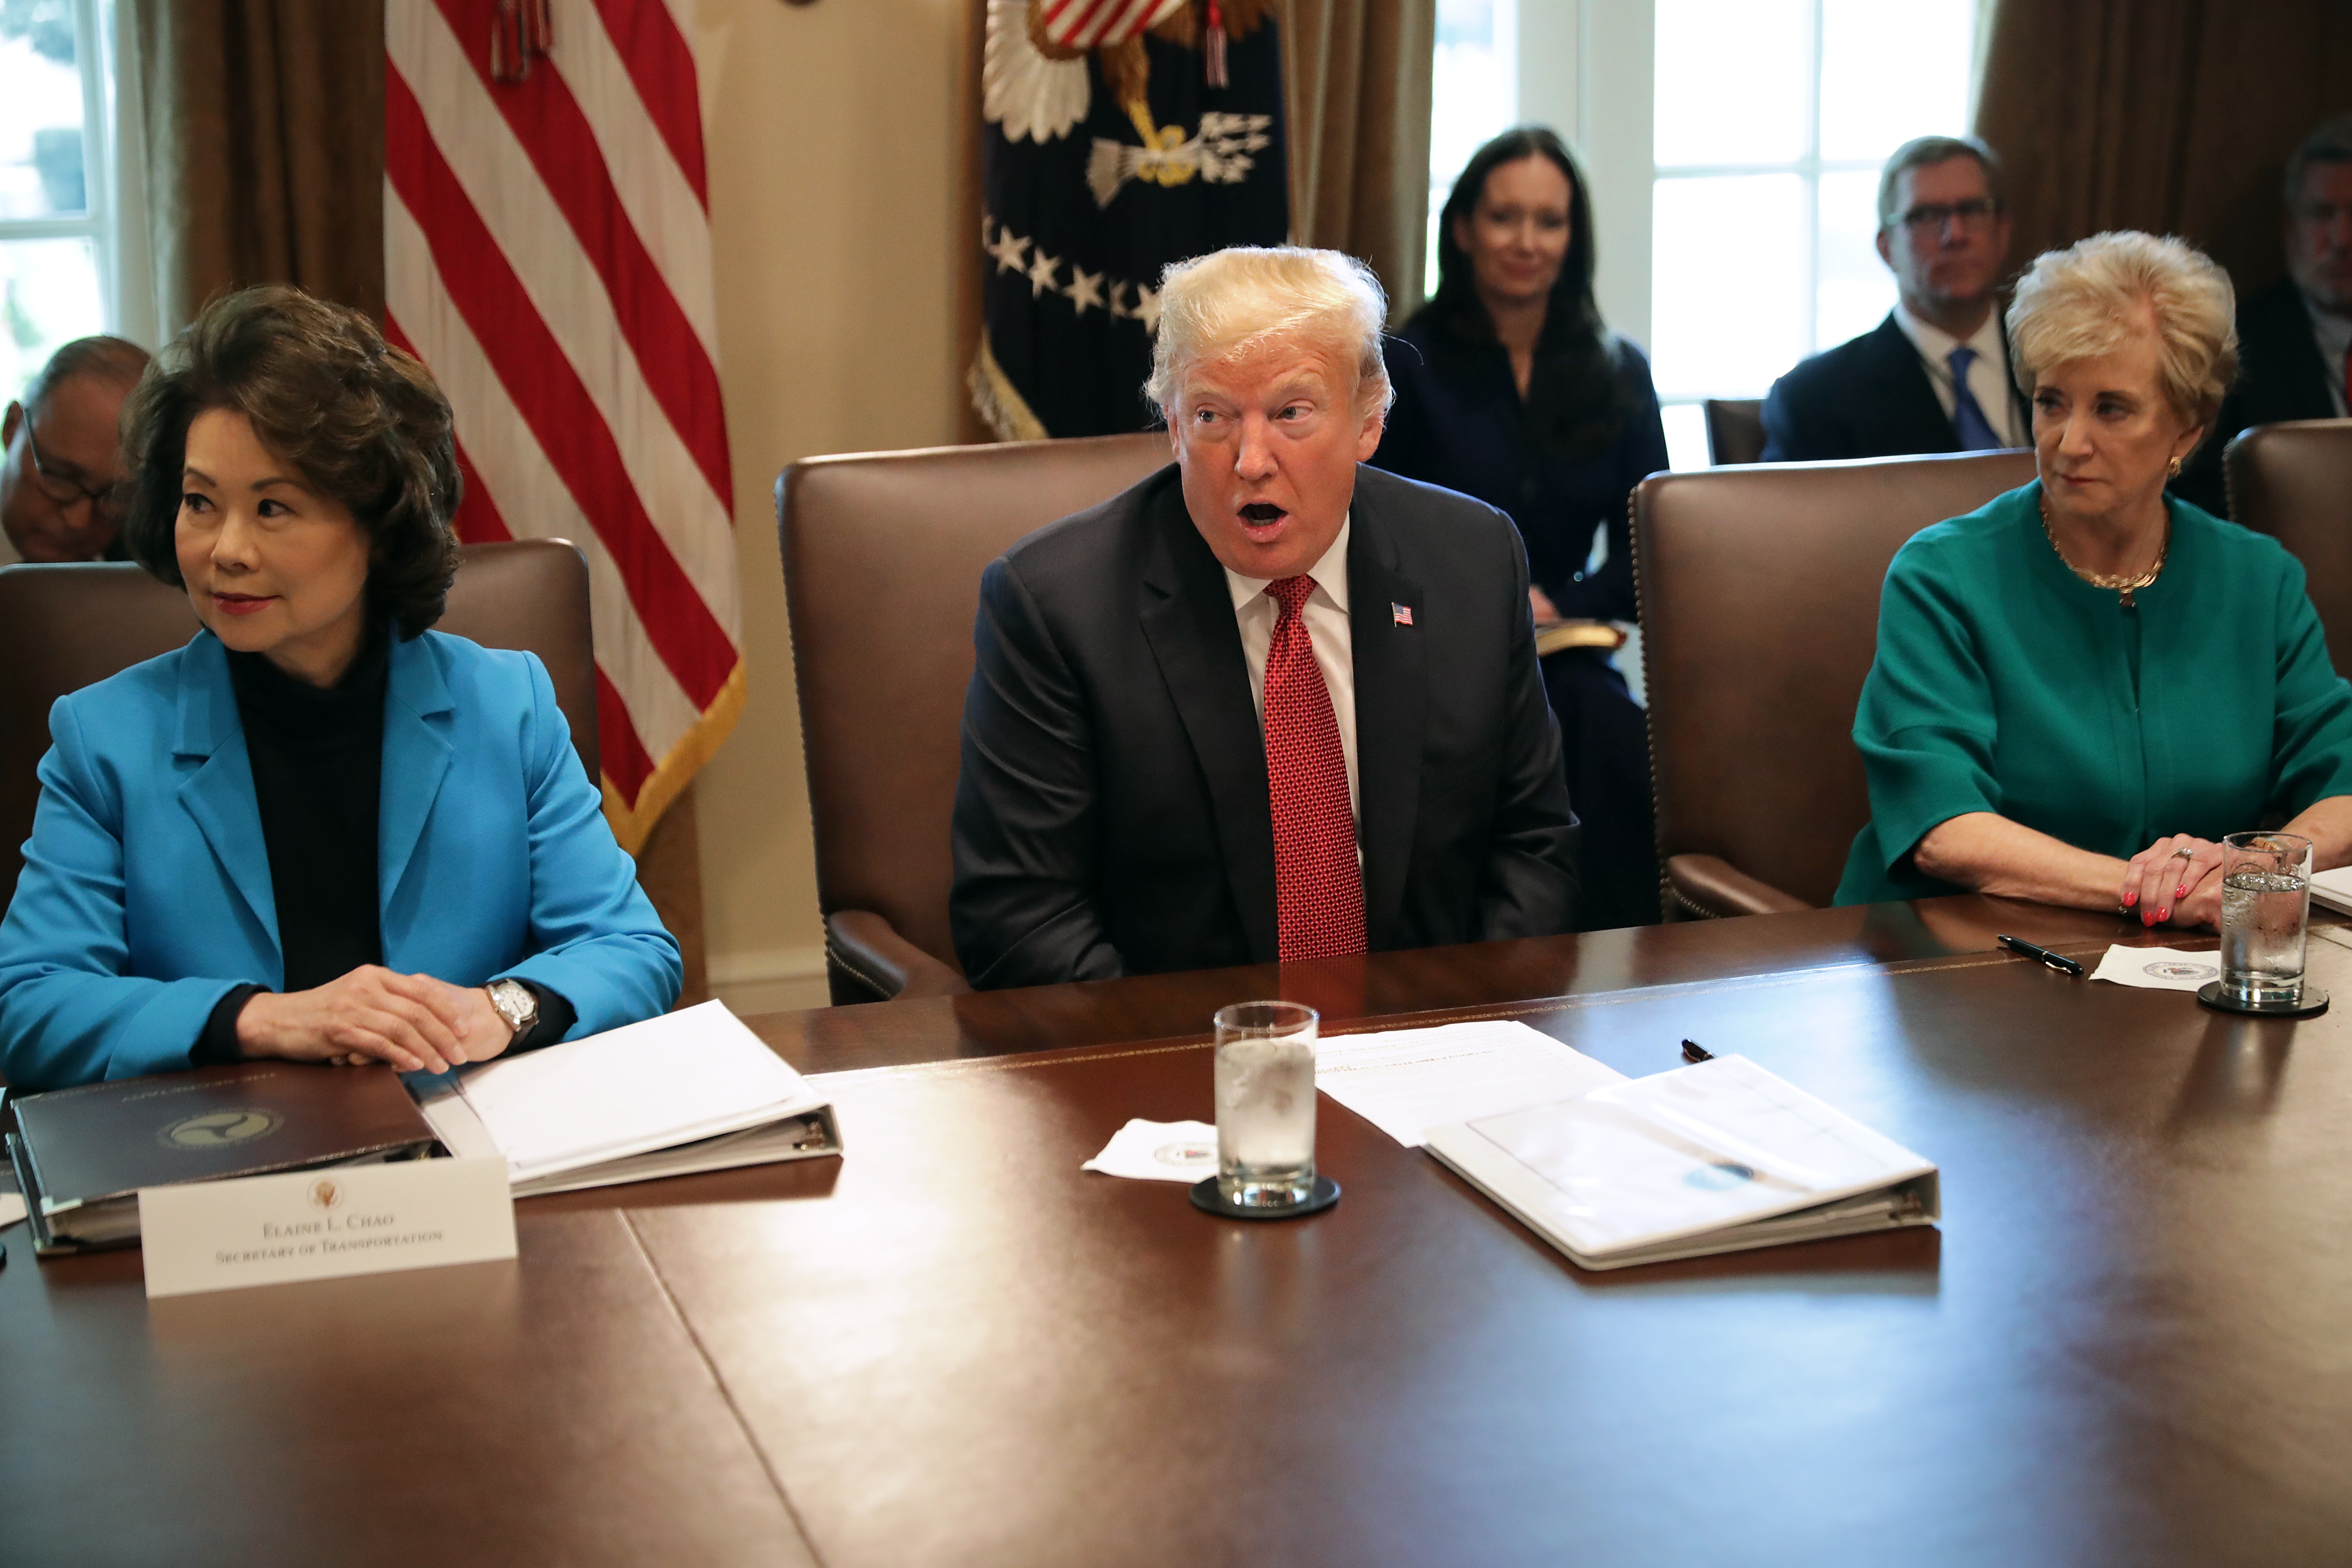 U.S. President Donald Trump conducts a cabinet meeting with Transportation Secretary Elaine Chao (L) in the Cabinet Room at the White House October 17, 2018 in Washington, DC. (Photo by Chip Somodevilla/Getty Images)